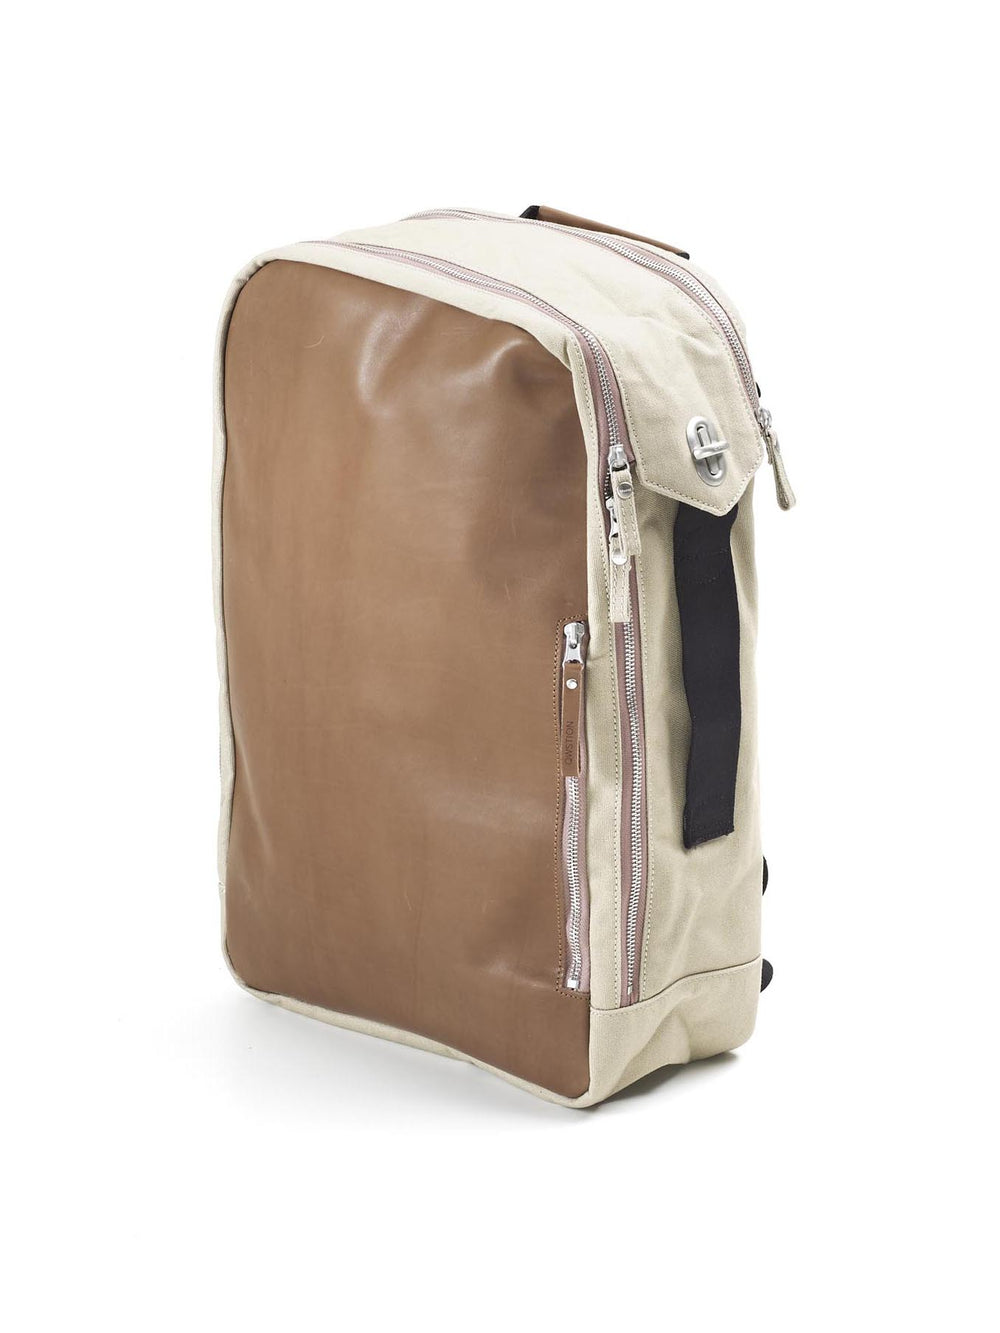 Brown leather and canvas characterize the design of this flexible Qwstion backpack